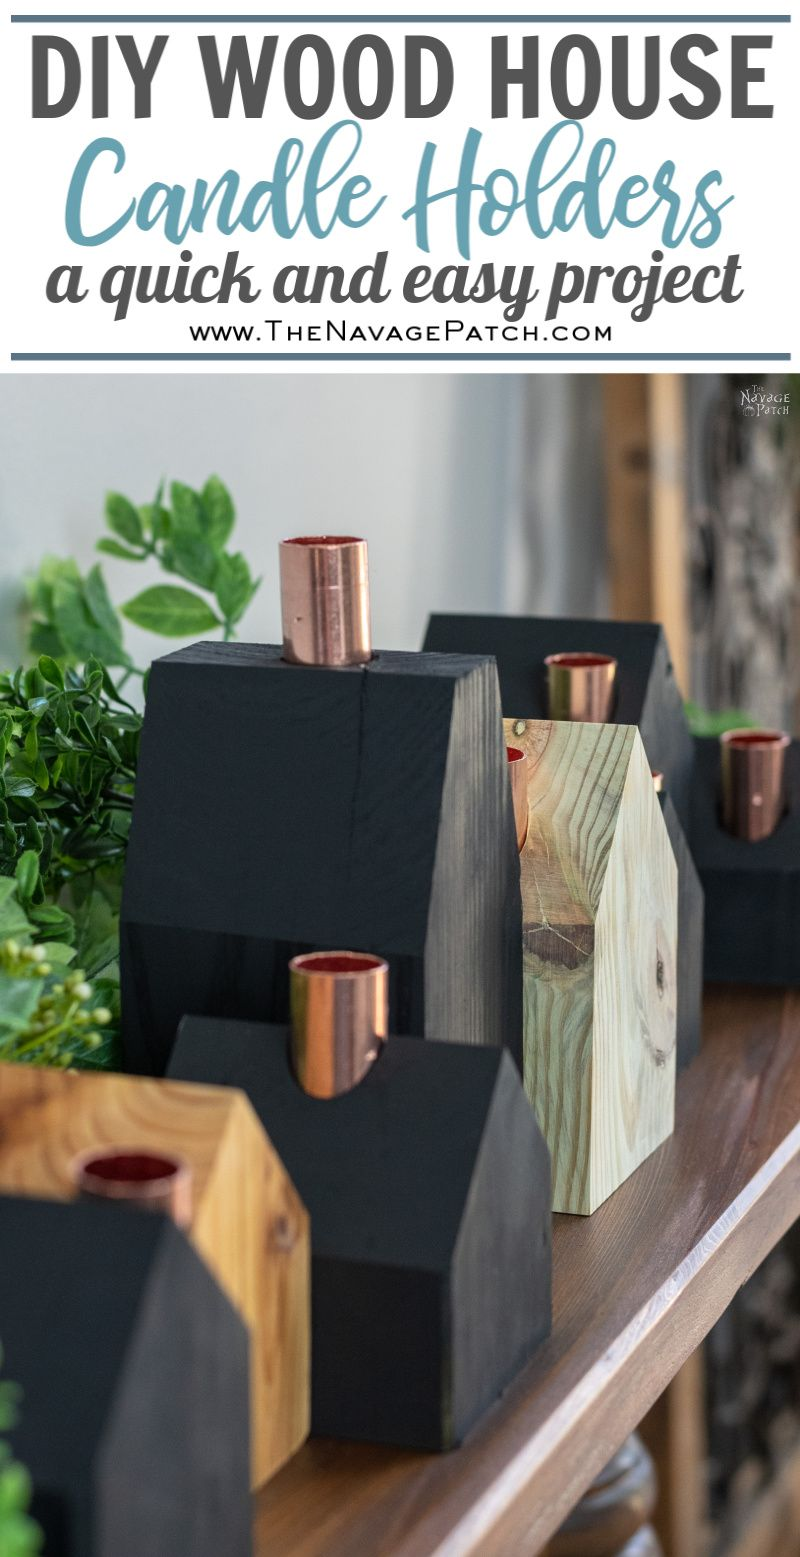 DIY Wood House Candle Holders | DIY Christmas village candle holders | Upcycled copper pipes | How to create a modern Christmas village | #TheNavagePatch #easydiy #Christmas #Upcycled #DIY #Holidaydecor #DIYChristmas #Christmascrafts # Christmasvillage #Christmaslights #DIYHomedecor #Holidays | TheNavagePatch.com